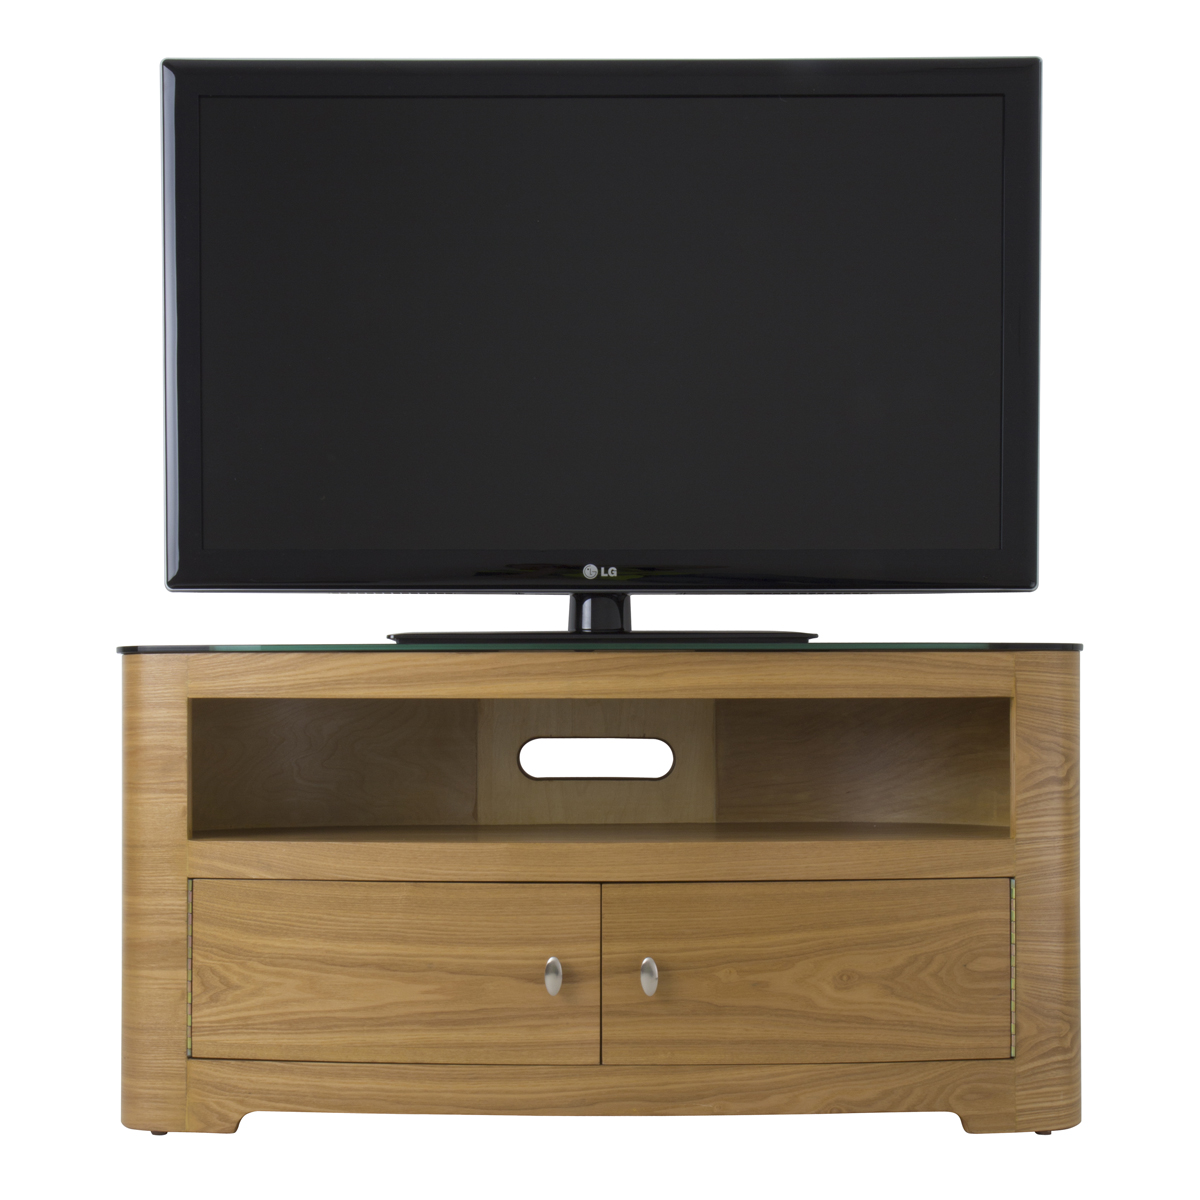 Large Oak Veneer Oval Lcd Plasma Tv Stand Cabinet 42 Inch